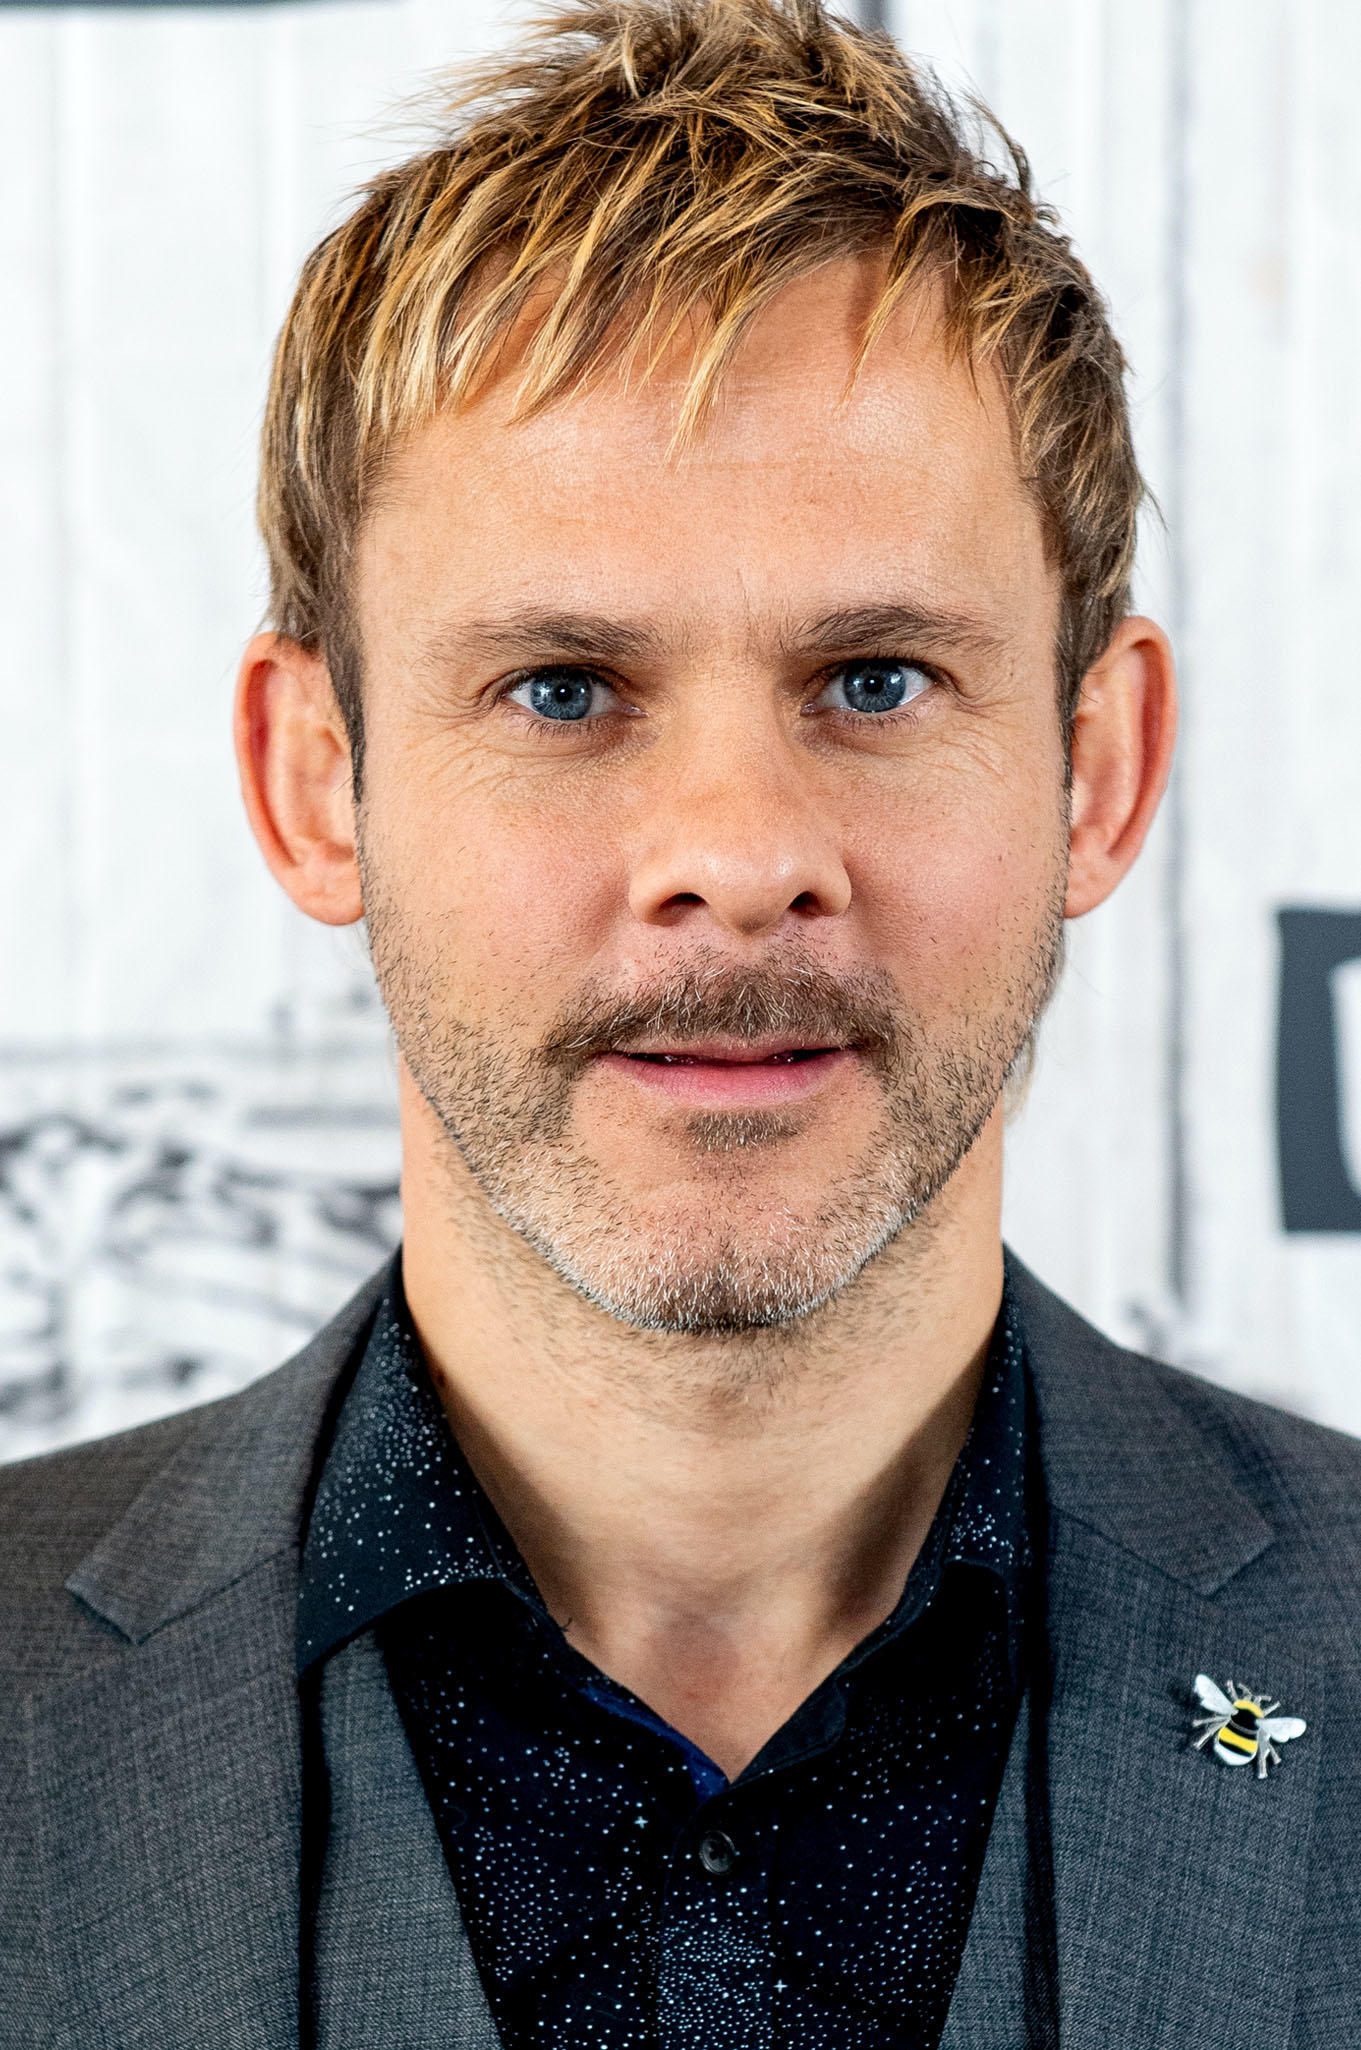 Dominic Monaghan at Build Studio in New York City.